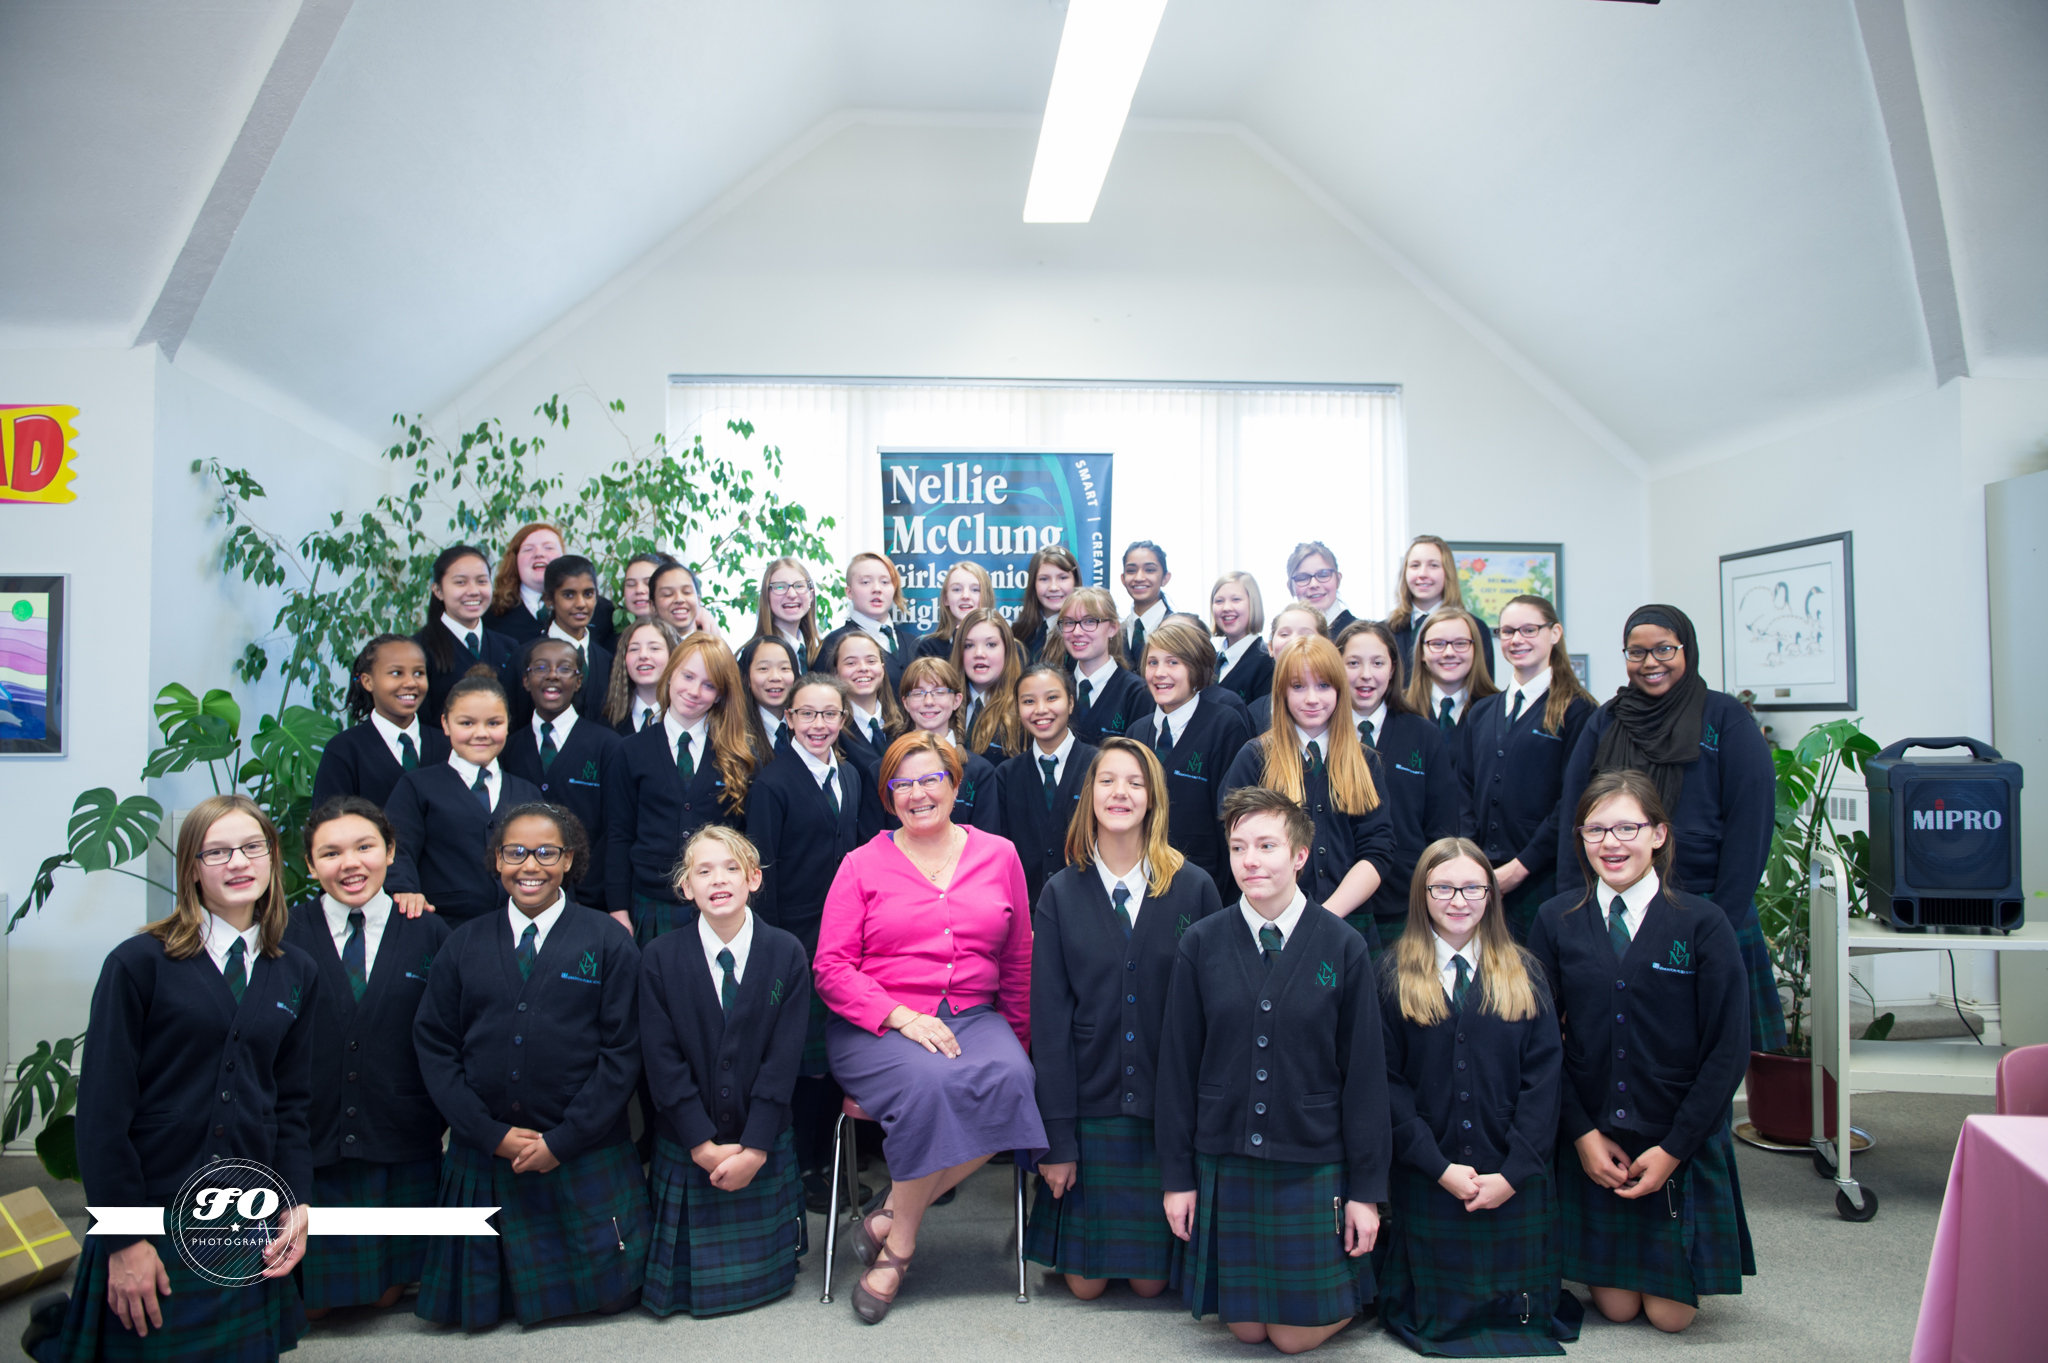 The Nellies host a pink Tea at Oliver school library with special guest Laurie Blakeman.